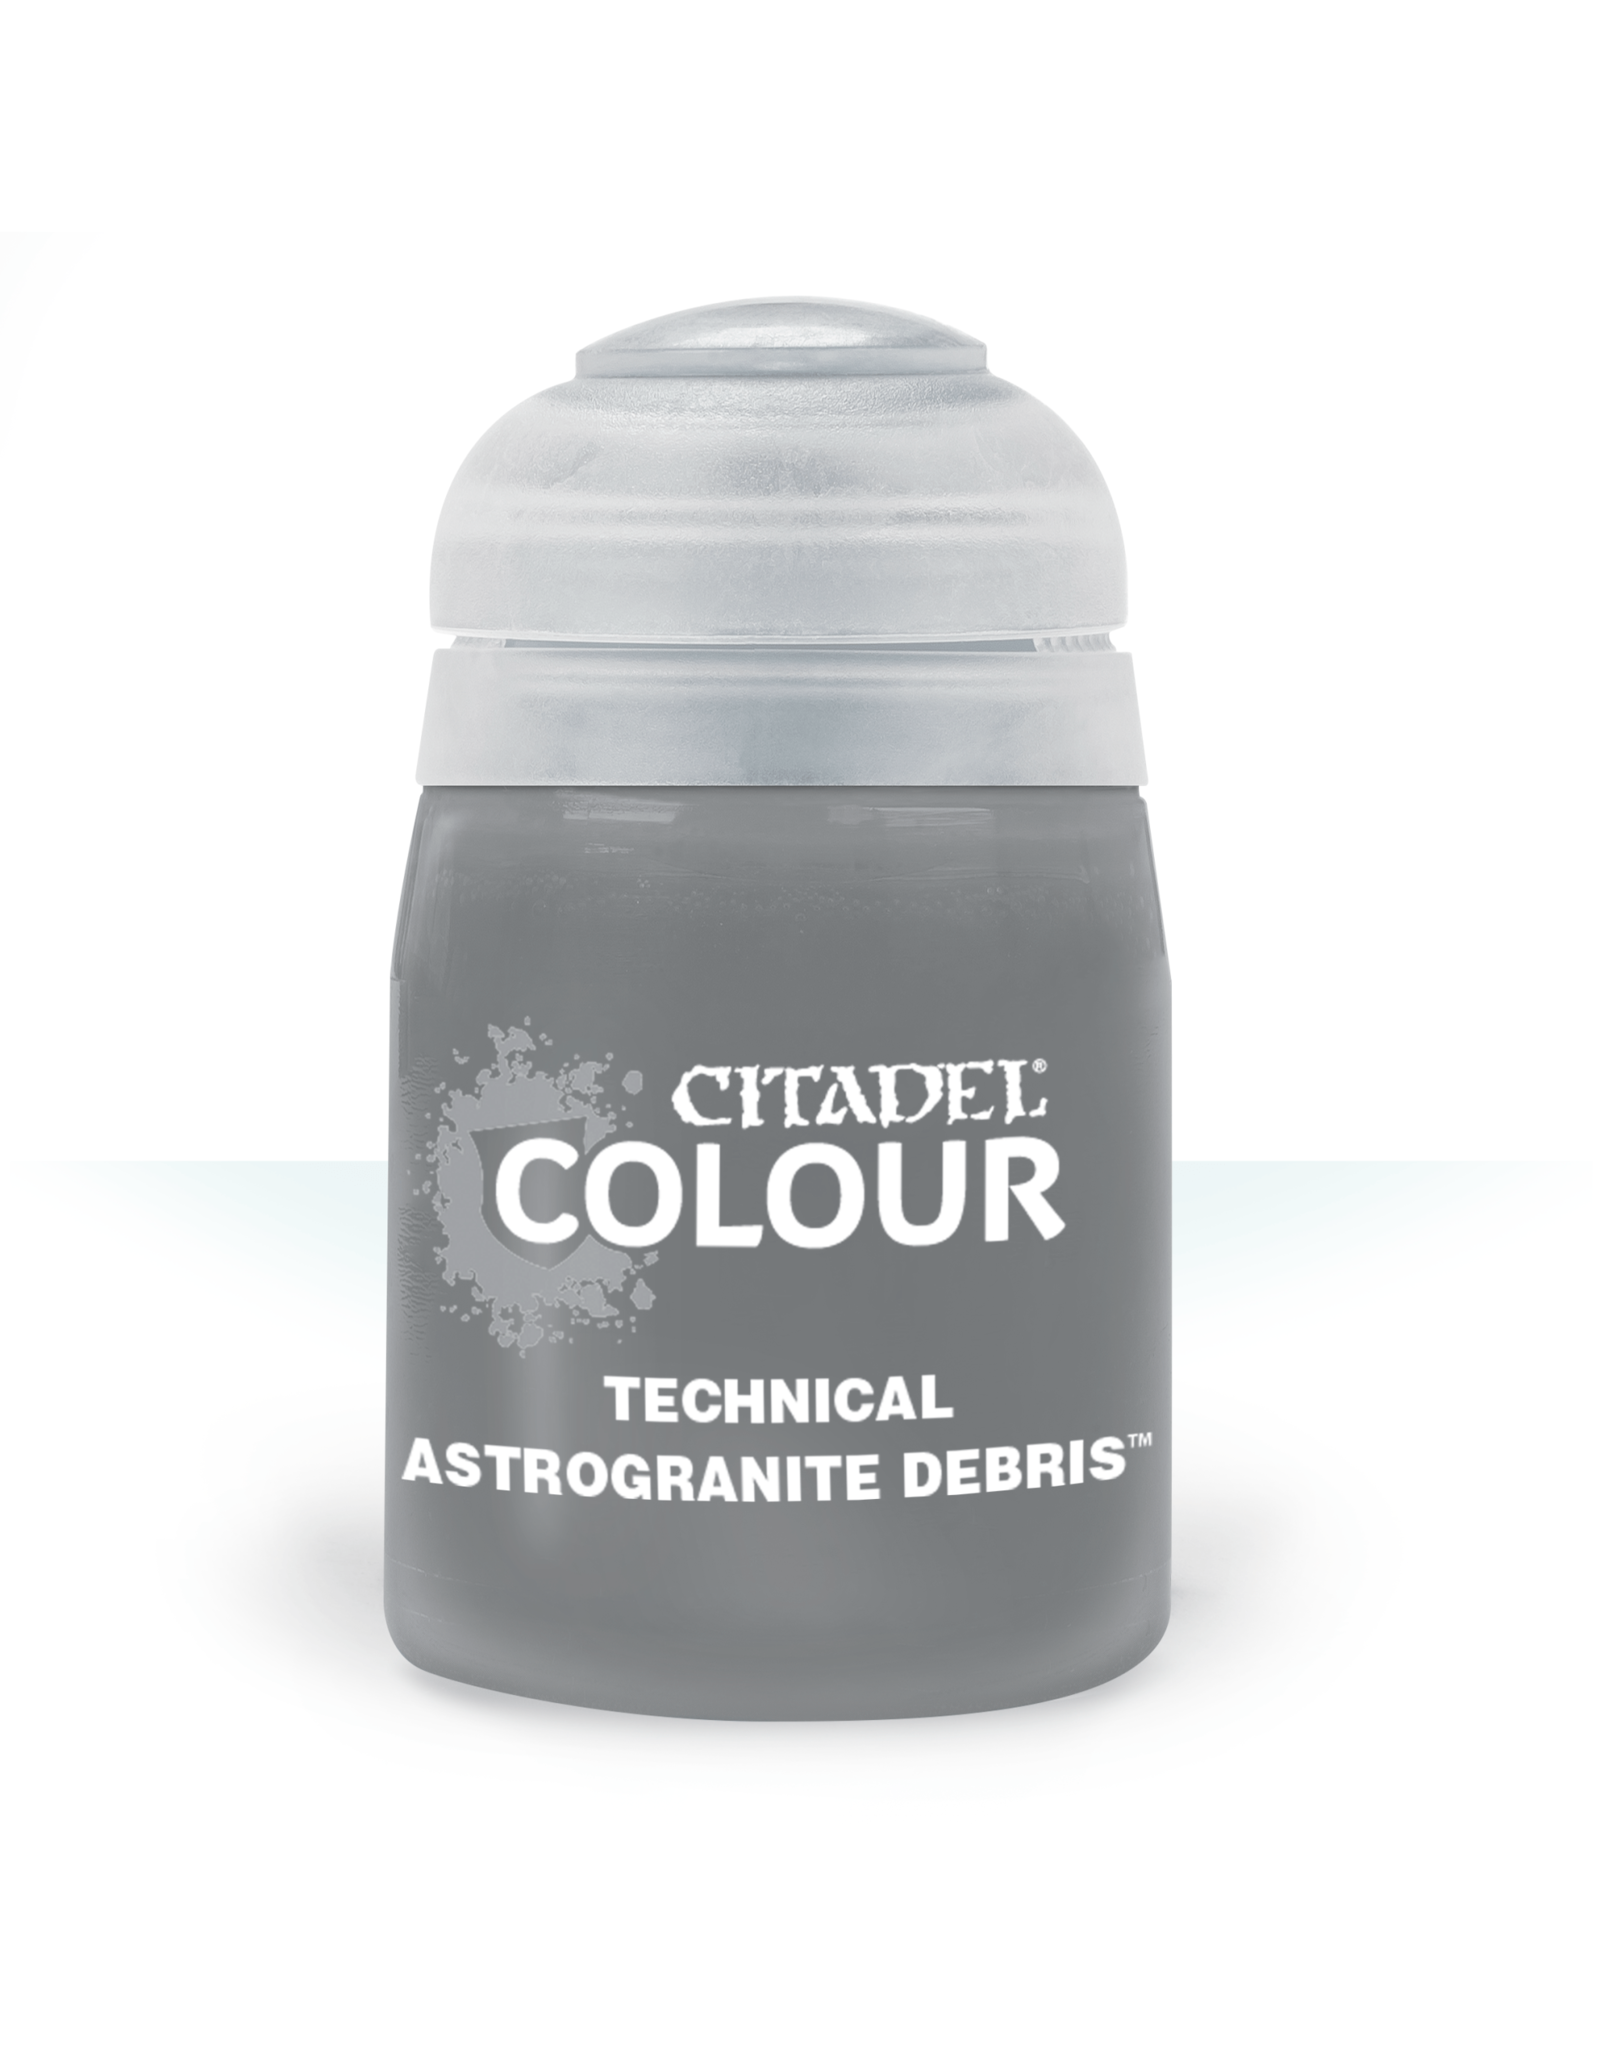 Citadel Citadel Paints Technical Paint Astrogranite Debris